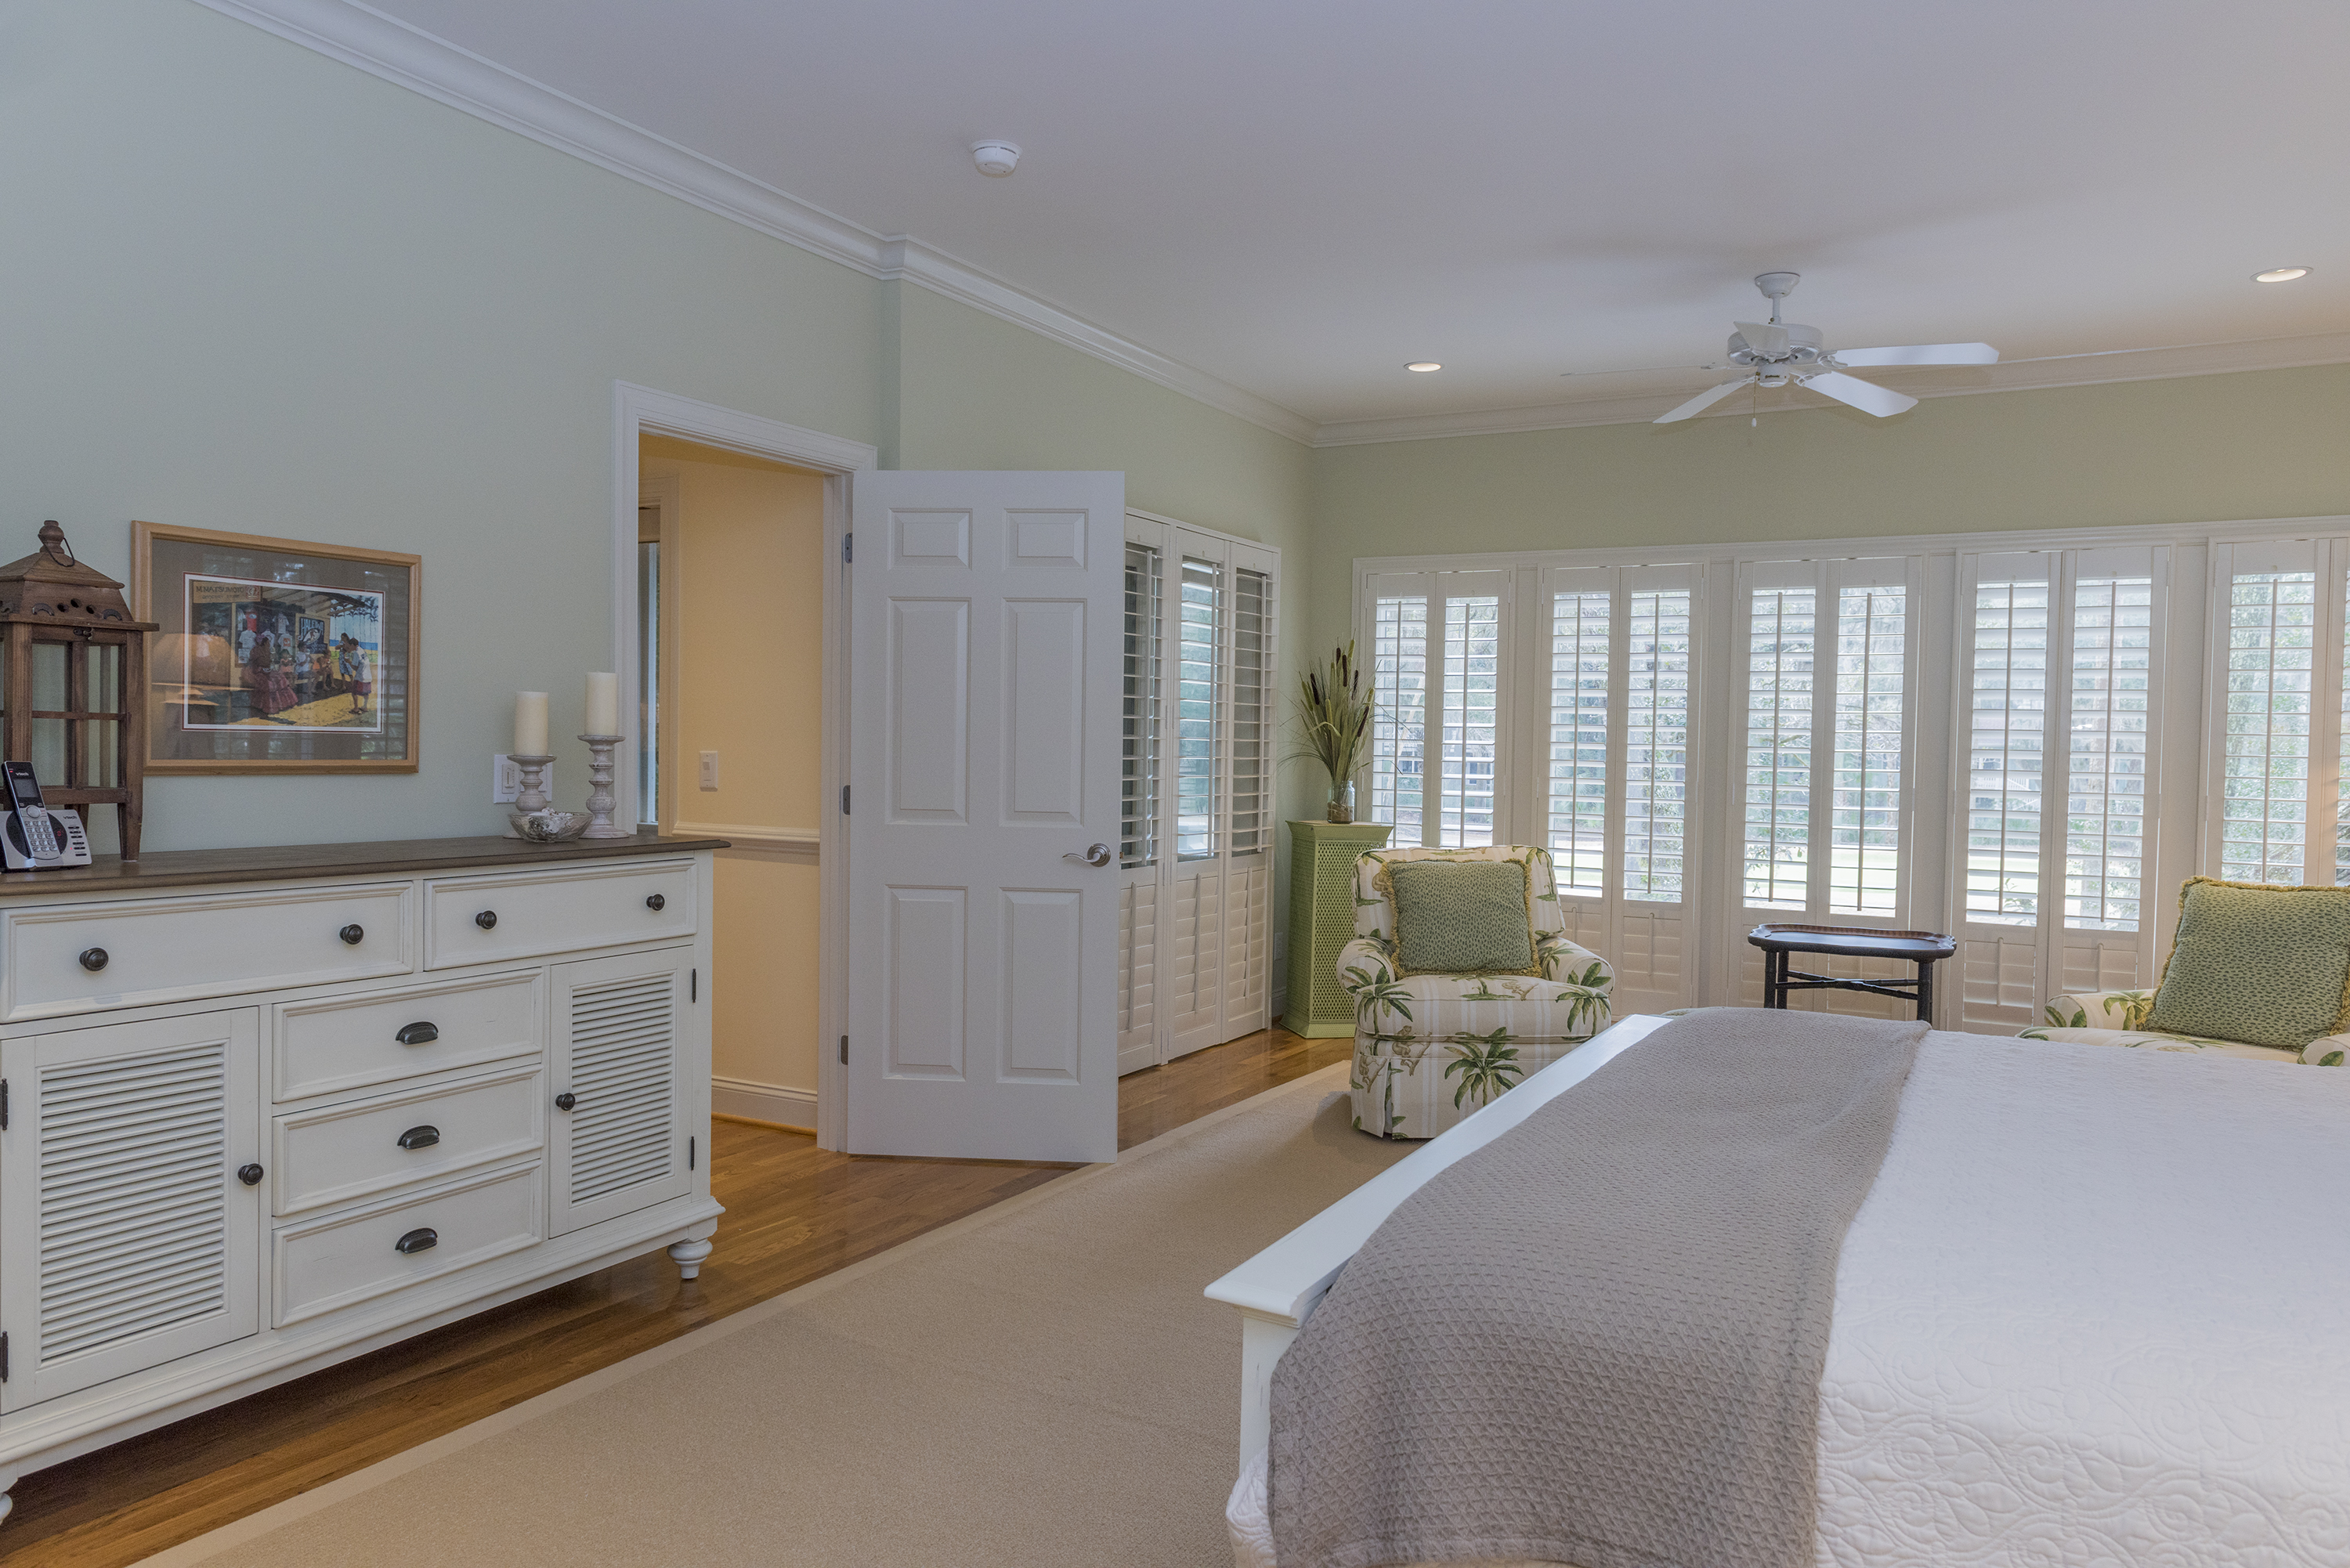 The large first floor master has a king bed, new furniture, sitting area, en suite bath with large shower, and jetted tub.  Washer/Dryer in master bedroom closet as well as another washer/dryer on 2nd floor.